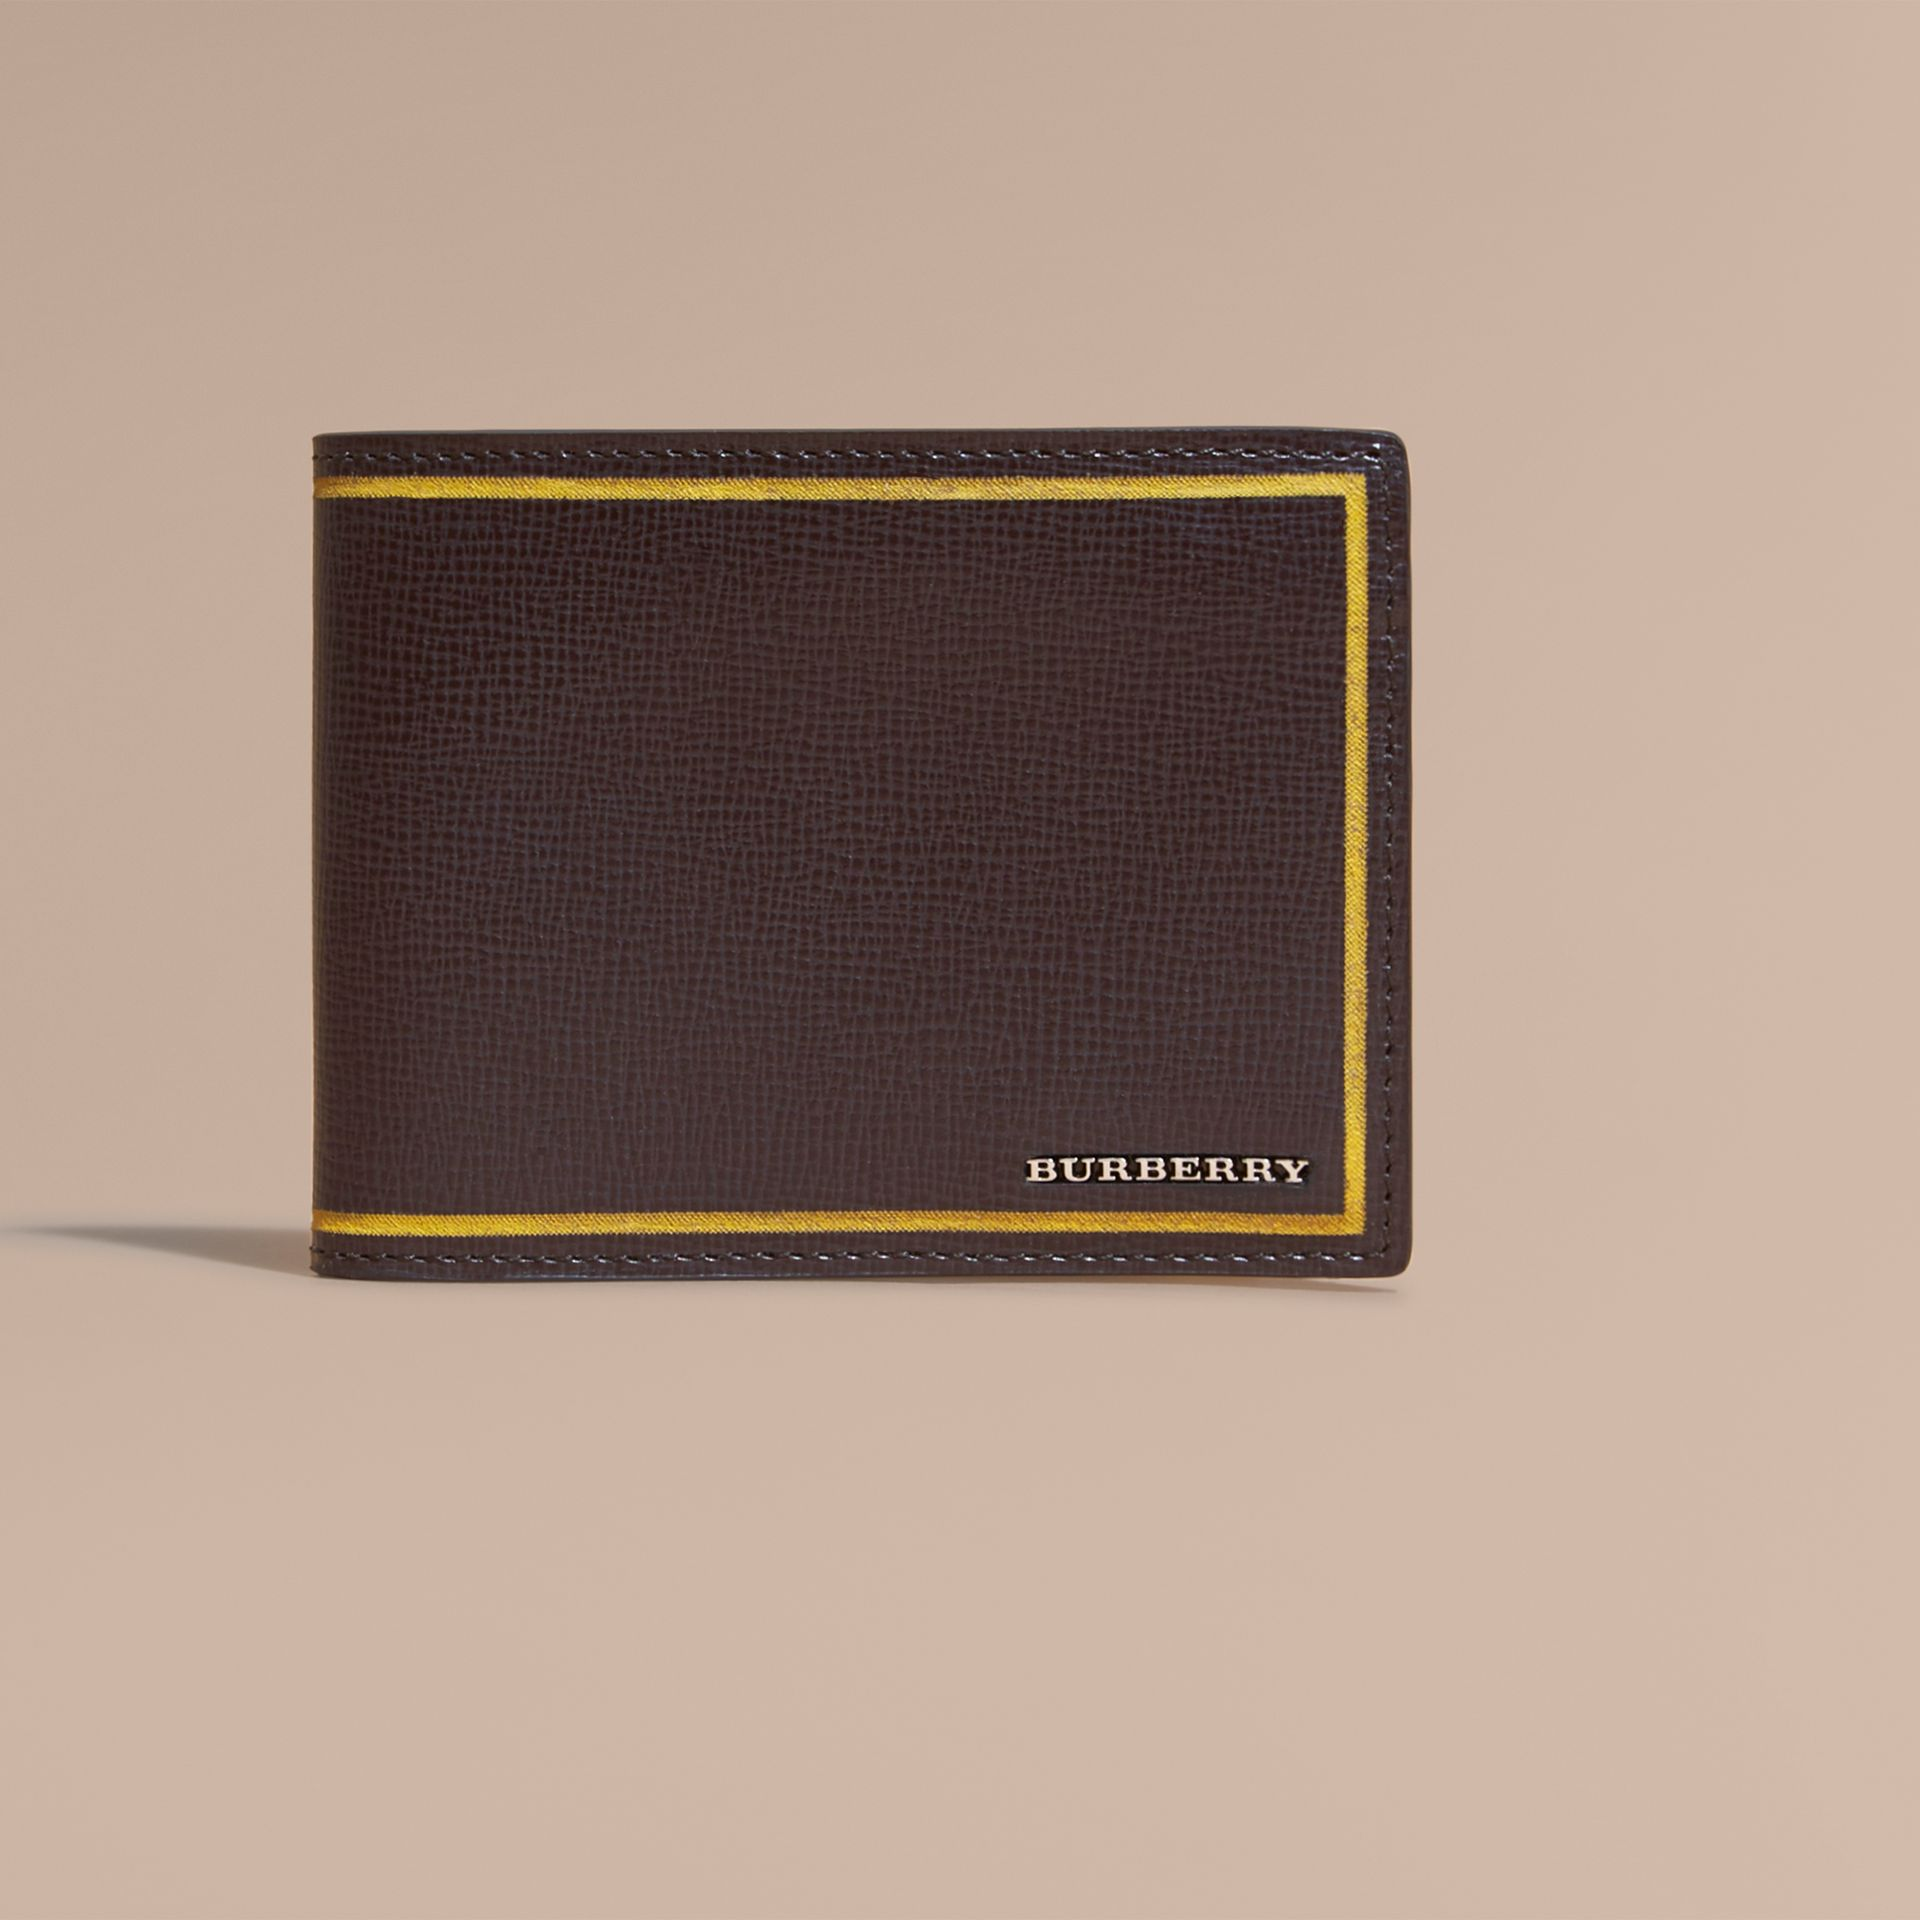 Border Detail London Leather Bifold Wallet in Peppercorn - gallery image 3